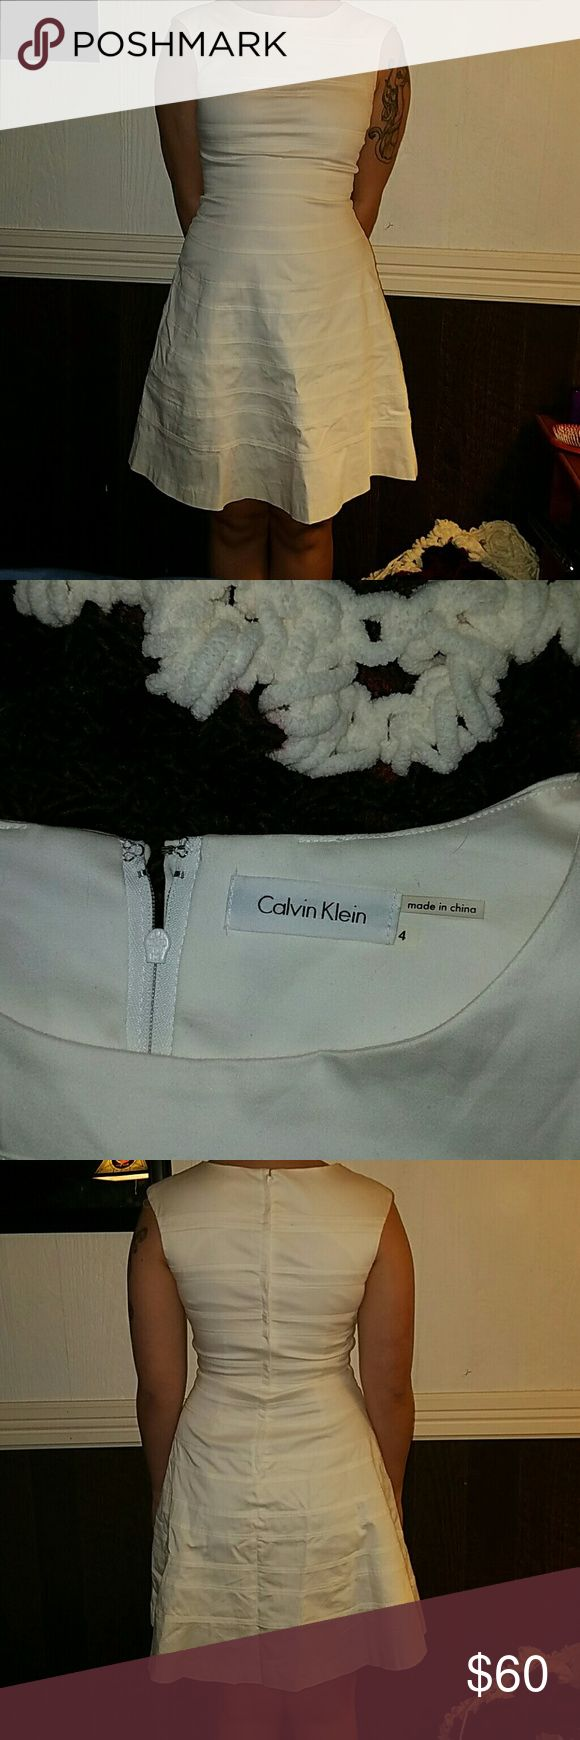 Calvin Klein size 4 dress Gently used Calvin Klein SIZE 4 dress. NO STAINS!  Great snug and comfortable fit. Elegant dress for the Easter ?????? Season! Calvin Klein Dresses Midi